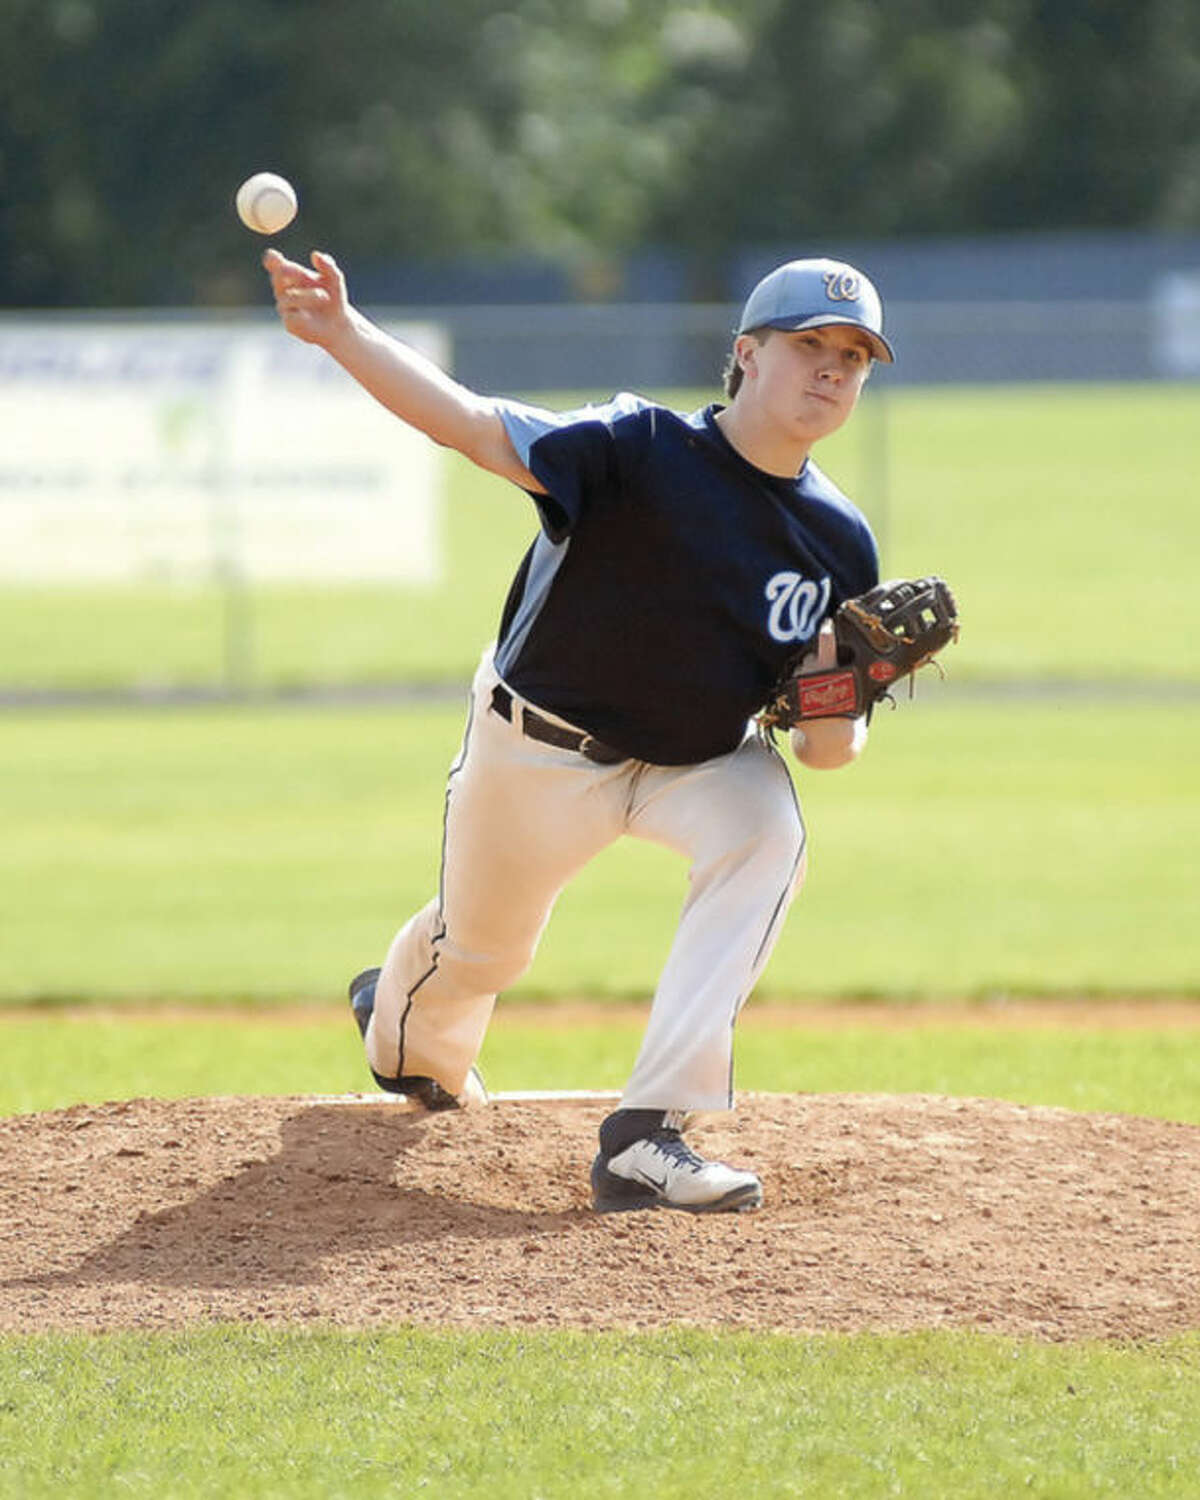 Hour photo/John Nash Wilton Junior Legion pitcher Glenn O'Brien hurled a complete-game, two-hit shutout over Zone 4 champ Trumbull during Monday's state tournament game in Trumbull. Wilton won 3-0.